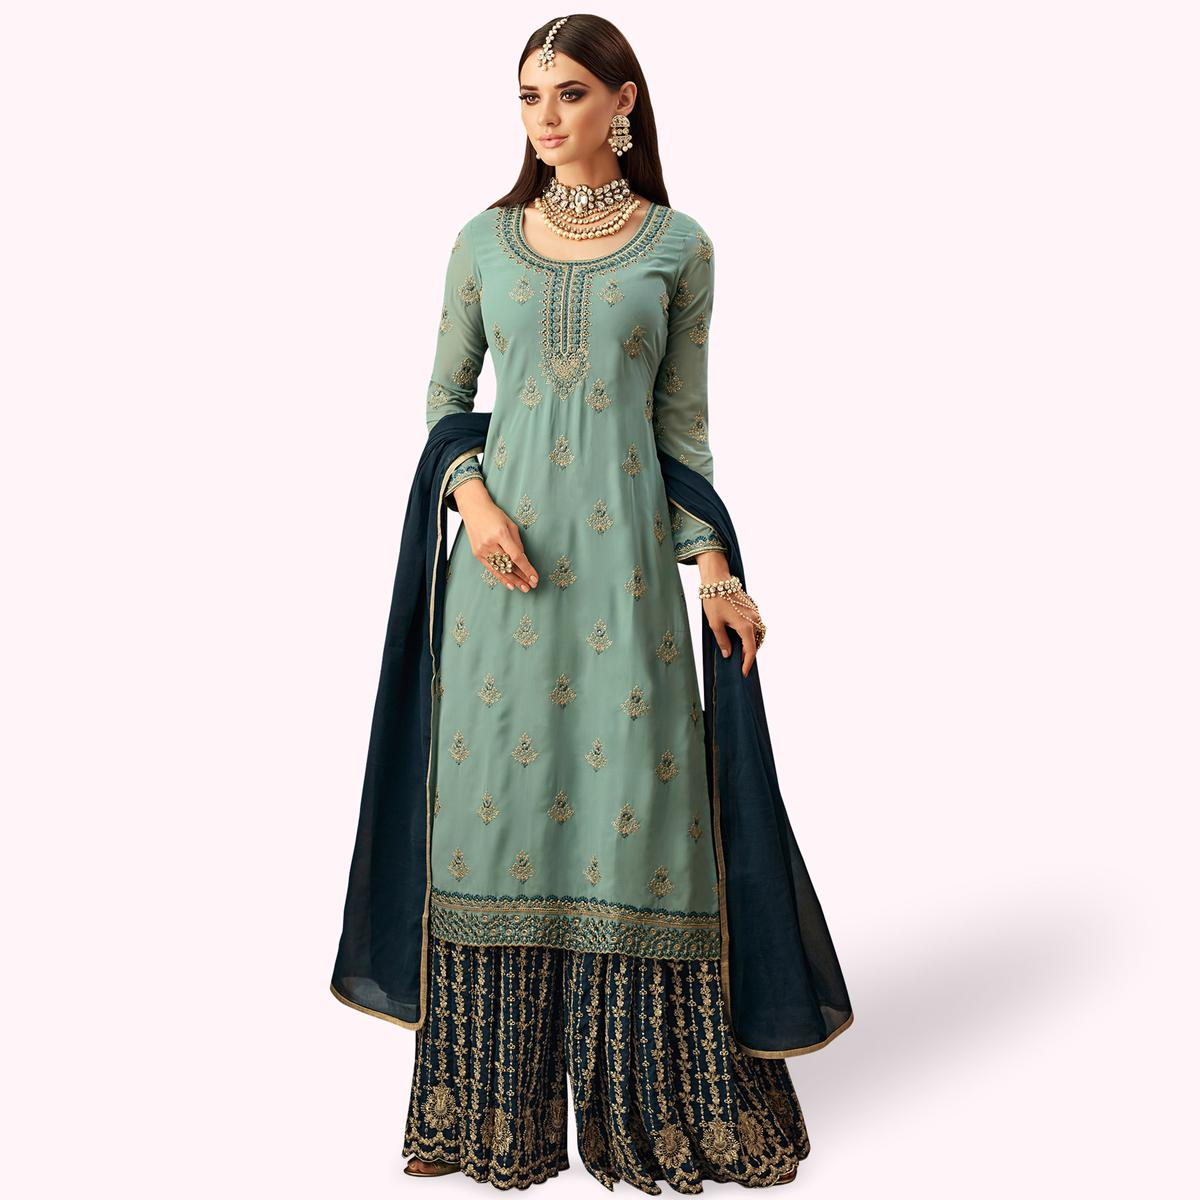 Stunning Cyan Blue Colored Partywear Embroidered Faux Georgette Palazzo Suit